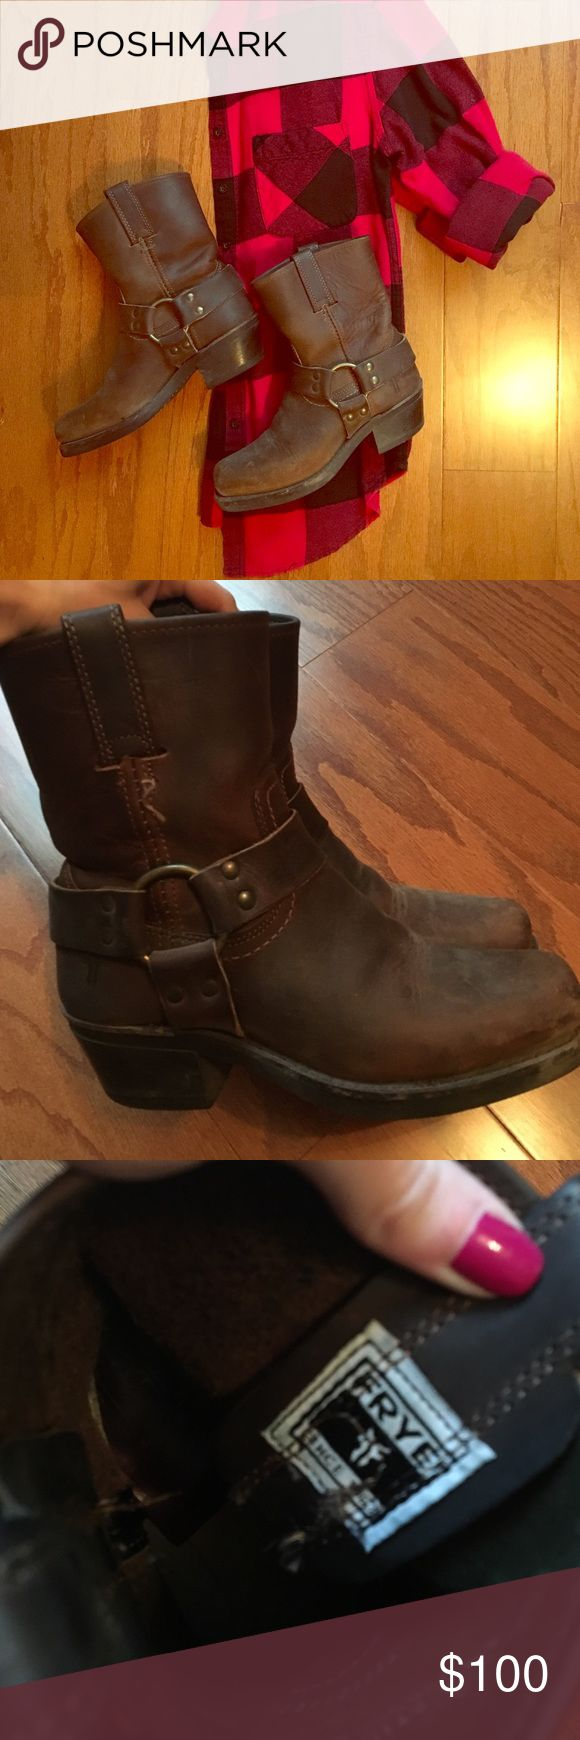 Short Frye boots Short Frye boots. Square toe. The bottoms barely have any wear on the tread Frye Shoes Ankle Boots & Booties